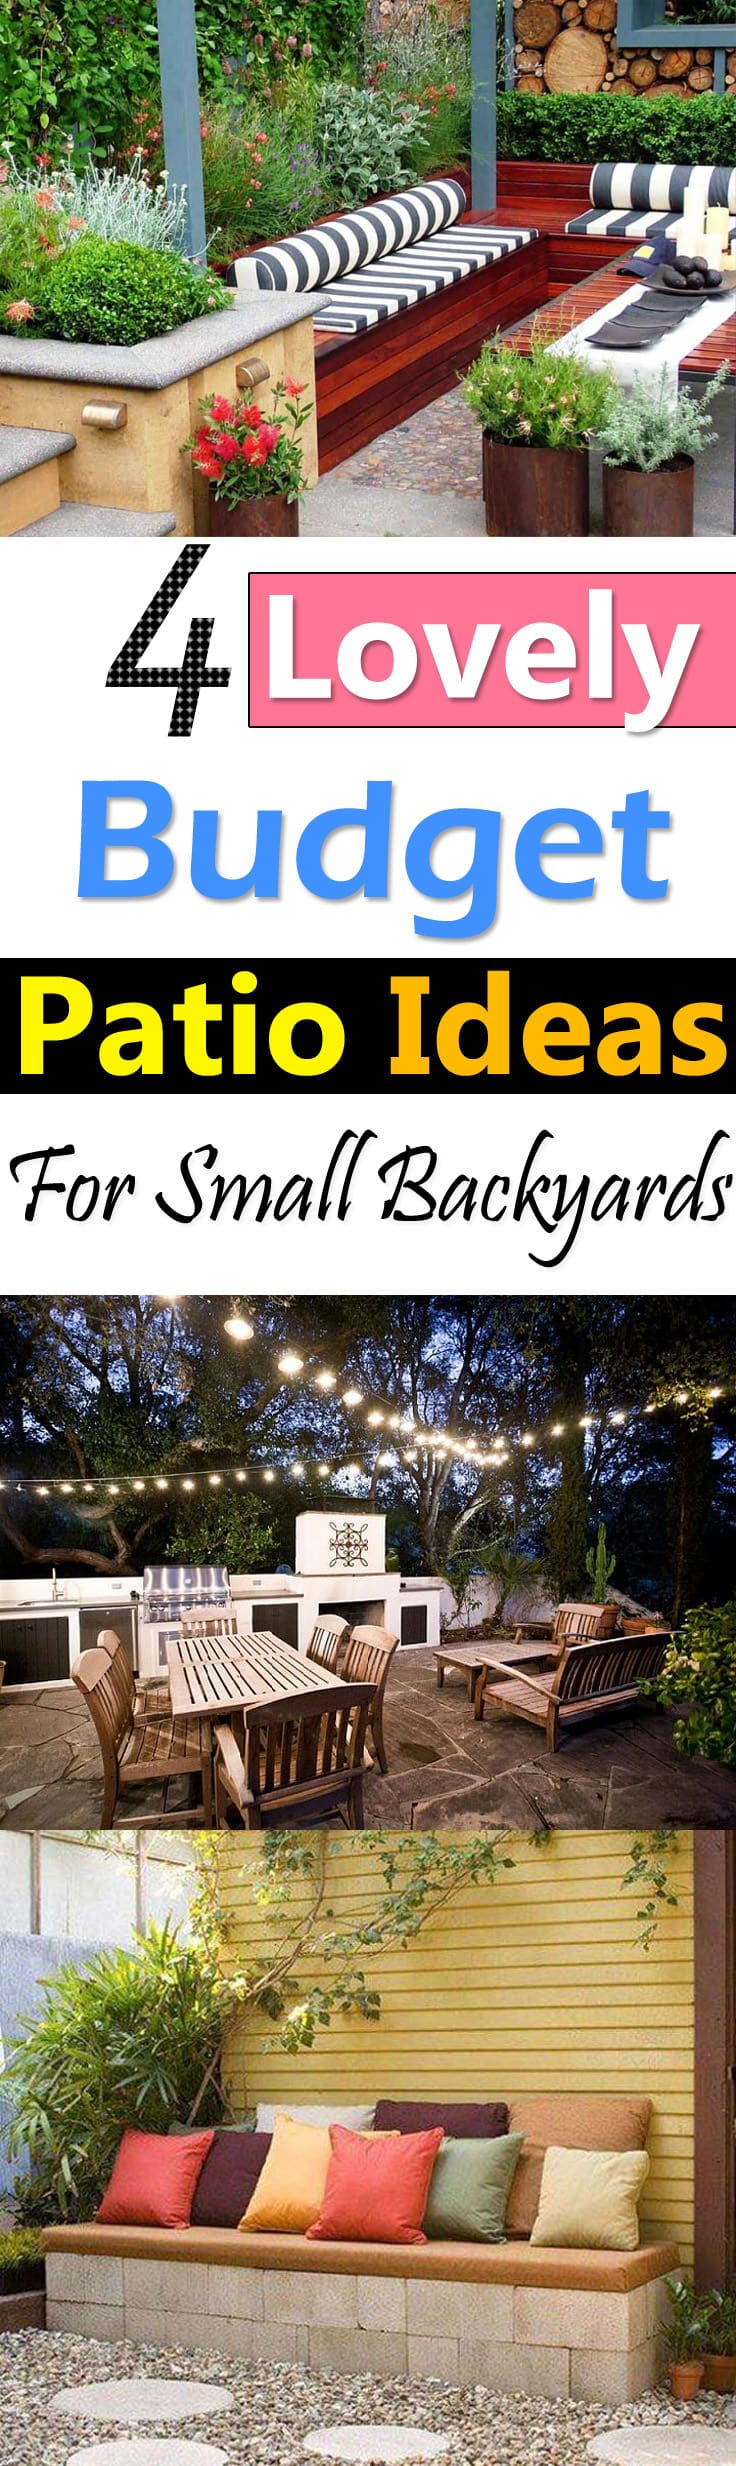 4 Lovely Budget Patio Ideas For Small Backyards Balcony